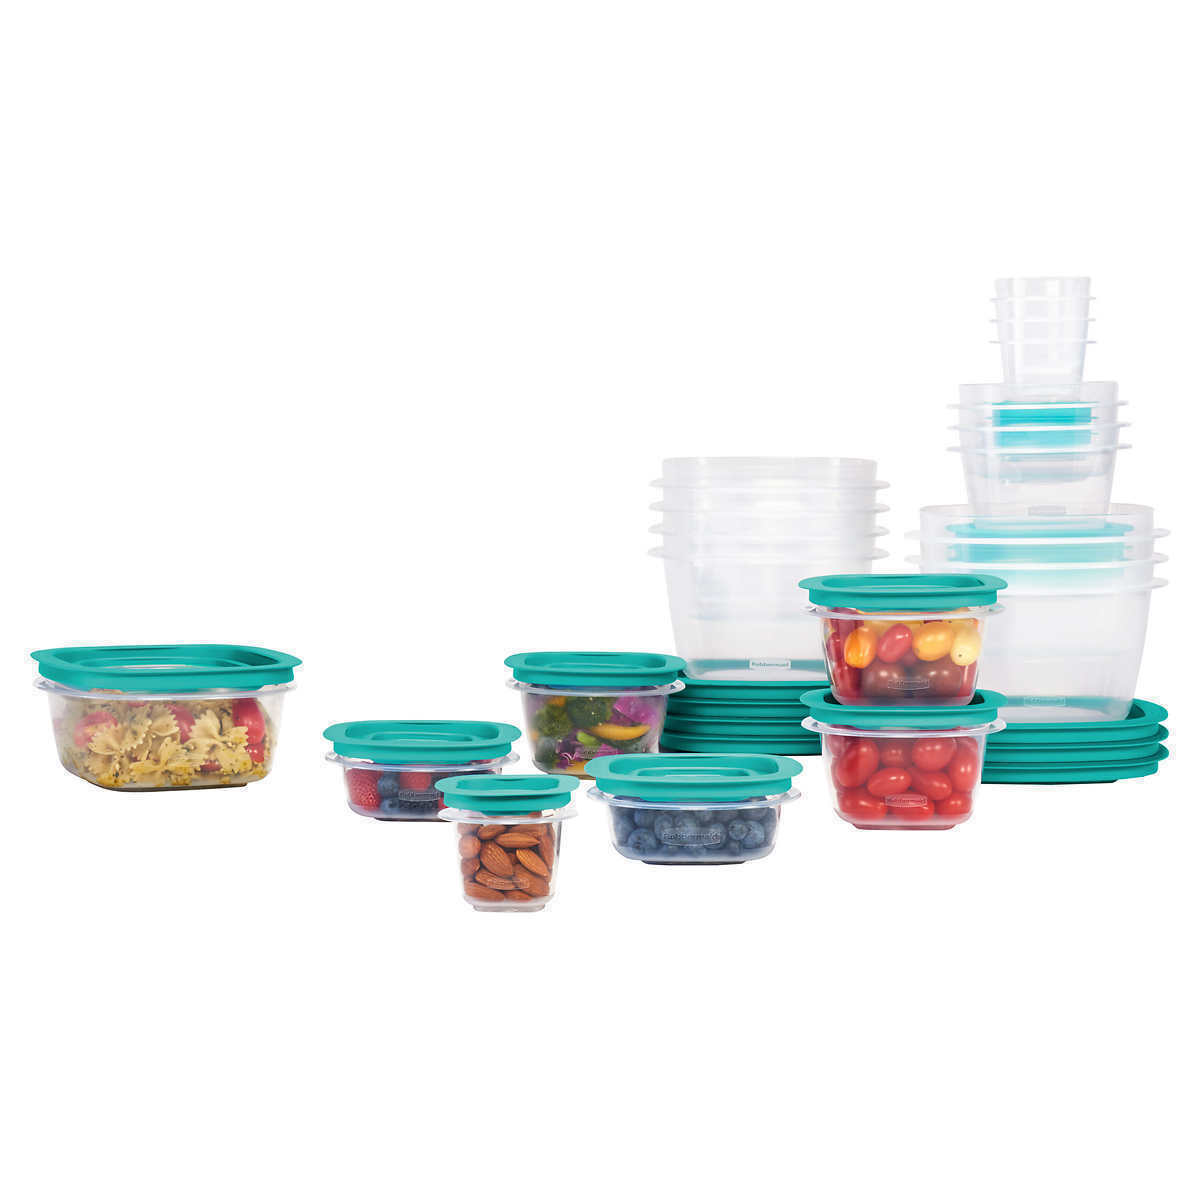 42-Piece Set Press & Lock Easy Find Lids Food Storage Containers, Teal, BPA-free - $30.68